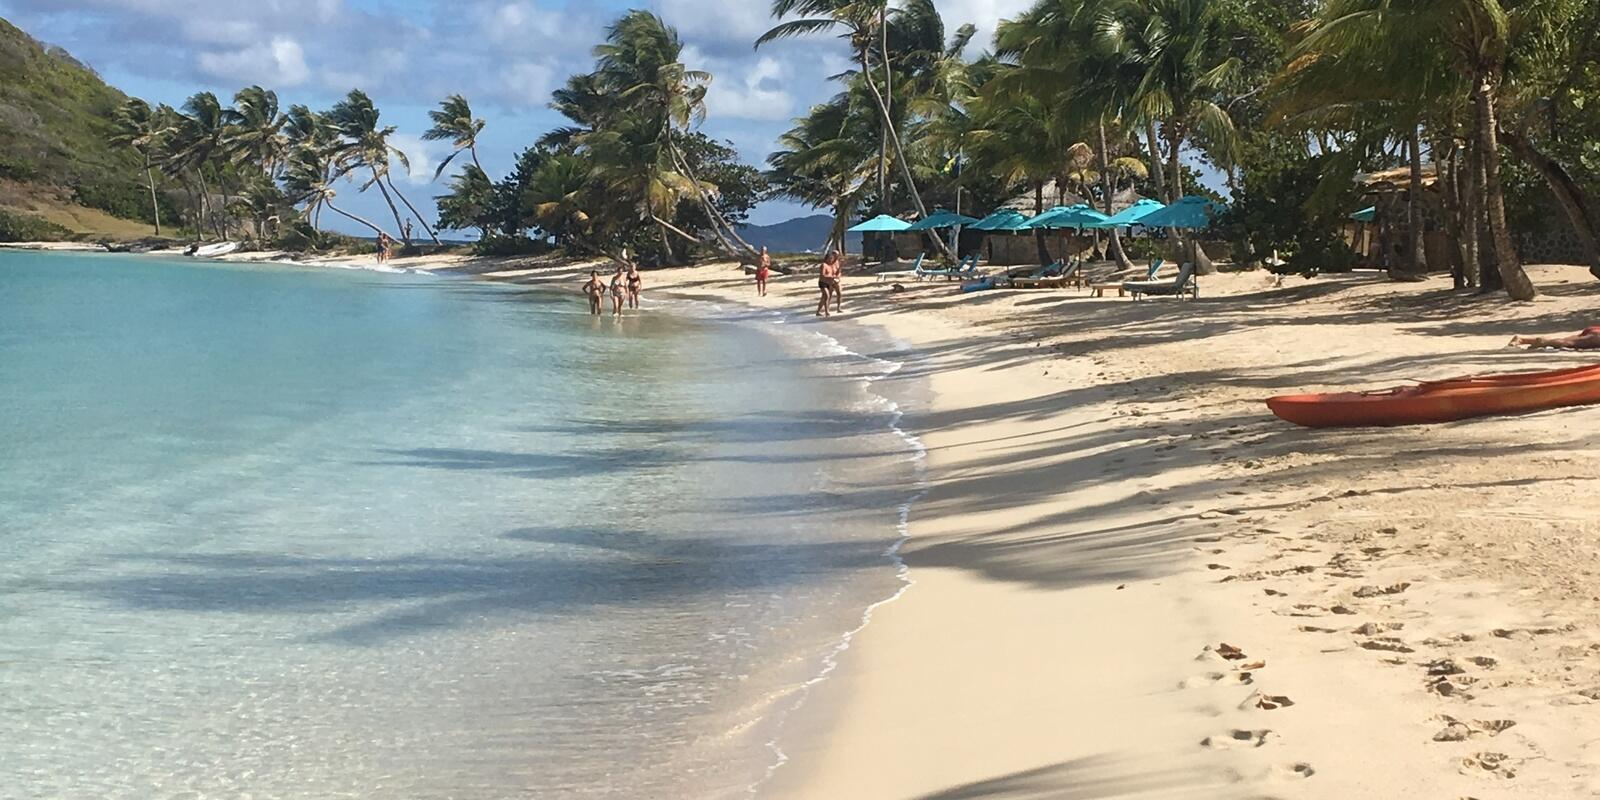 From Martinique to the Grenadines and Tobago Cays. a warm winter